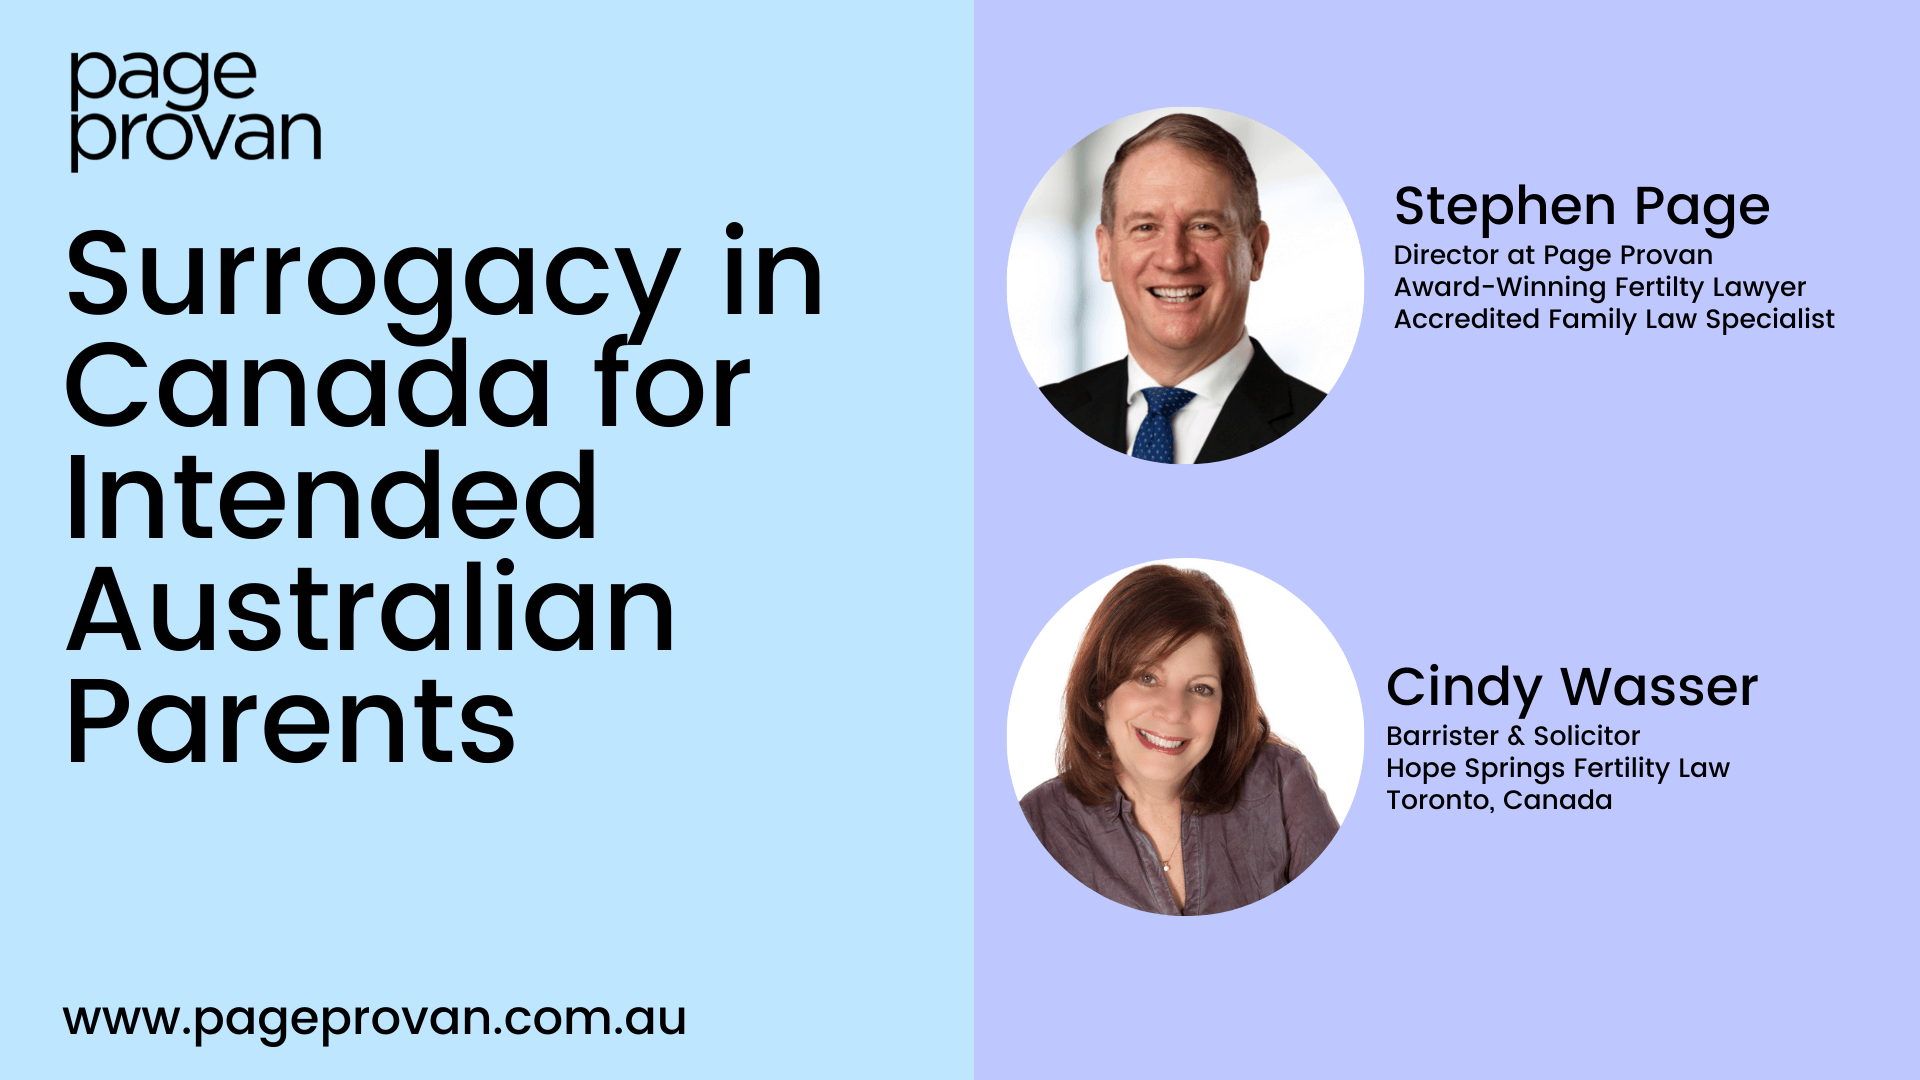 Surrogacy in Canada for Intended Australian Parents